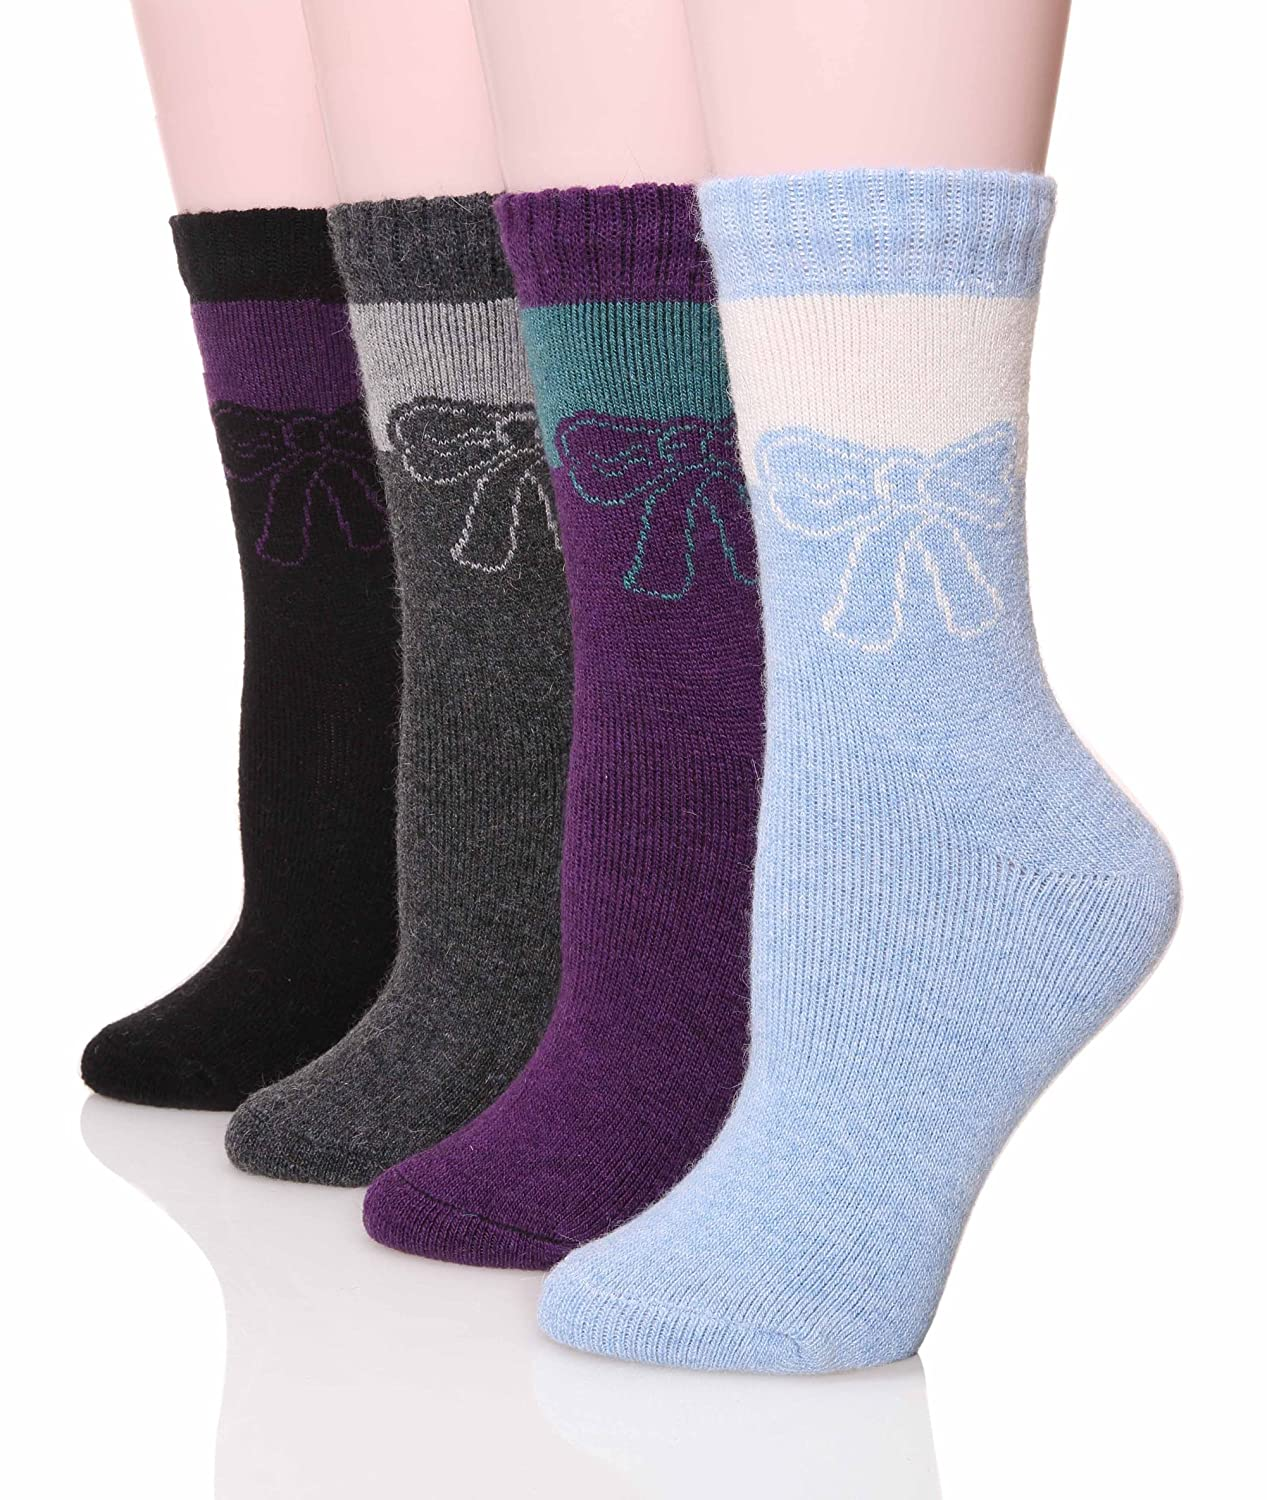 Vintage Socks | 1920s, 1930s, 1940s, 1950s, 1960s History SDBING Womens Extra Thick Colorful Winter Warm Soft Socks ( Pack of 4 ) $15.99 AT vintagedancer.com